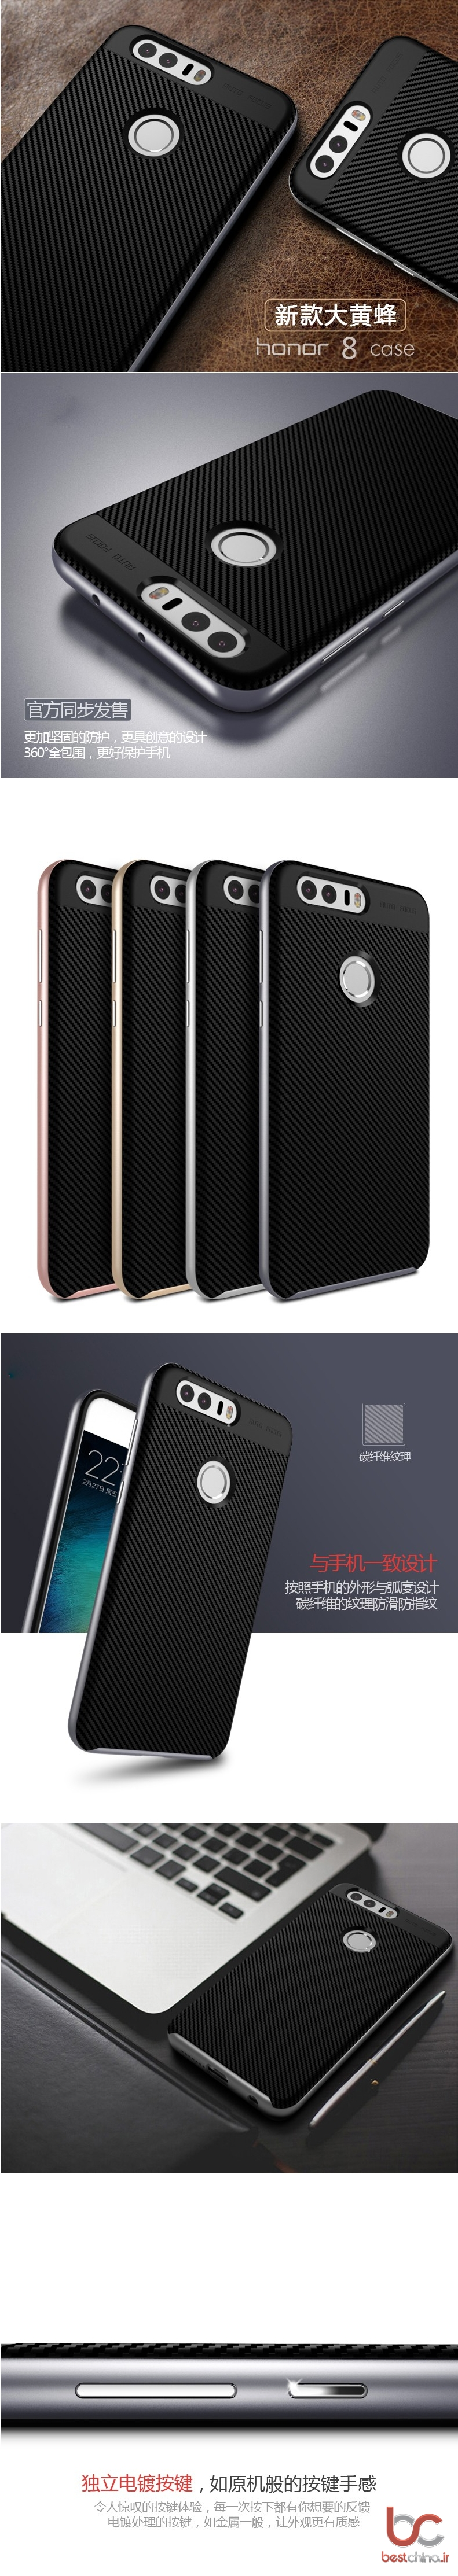 huawei-honor-8-ucase-back-cover-1